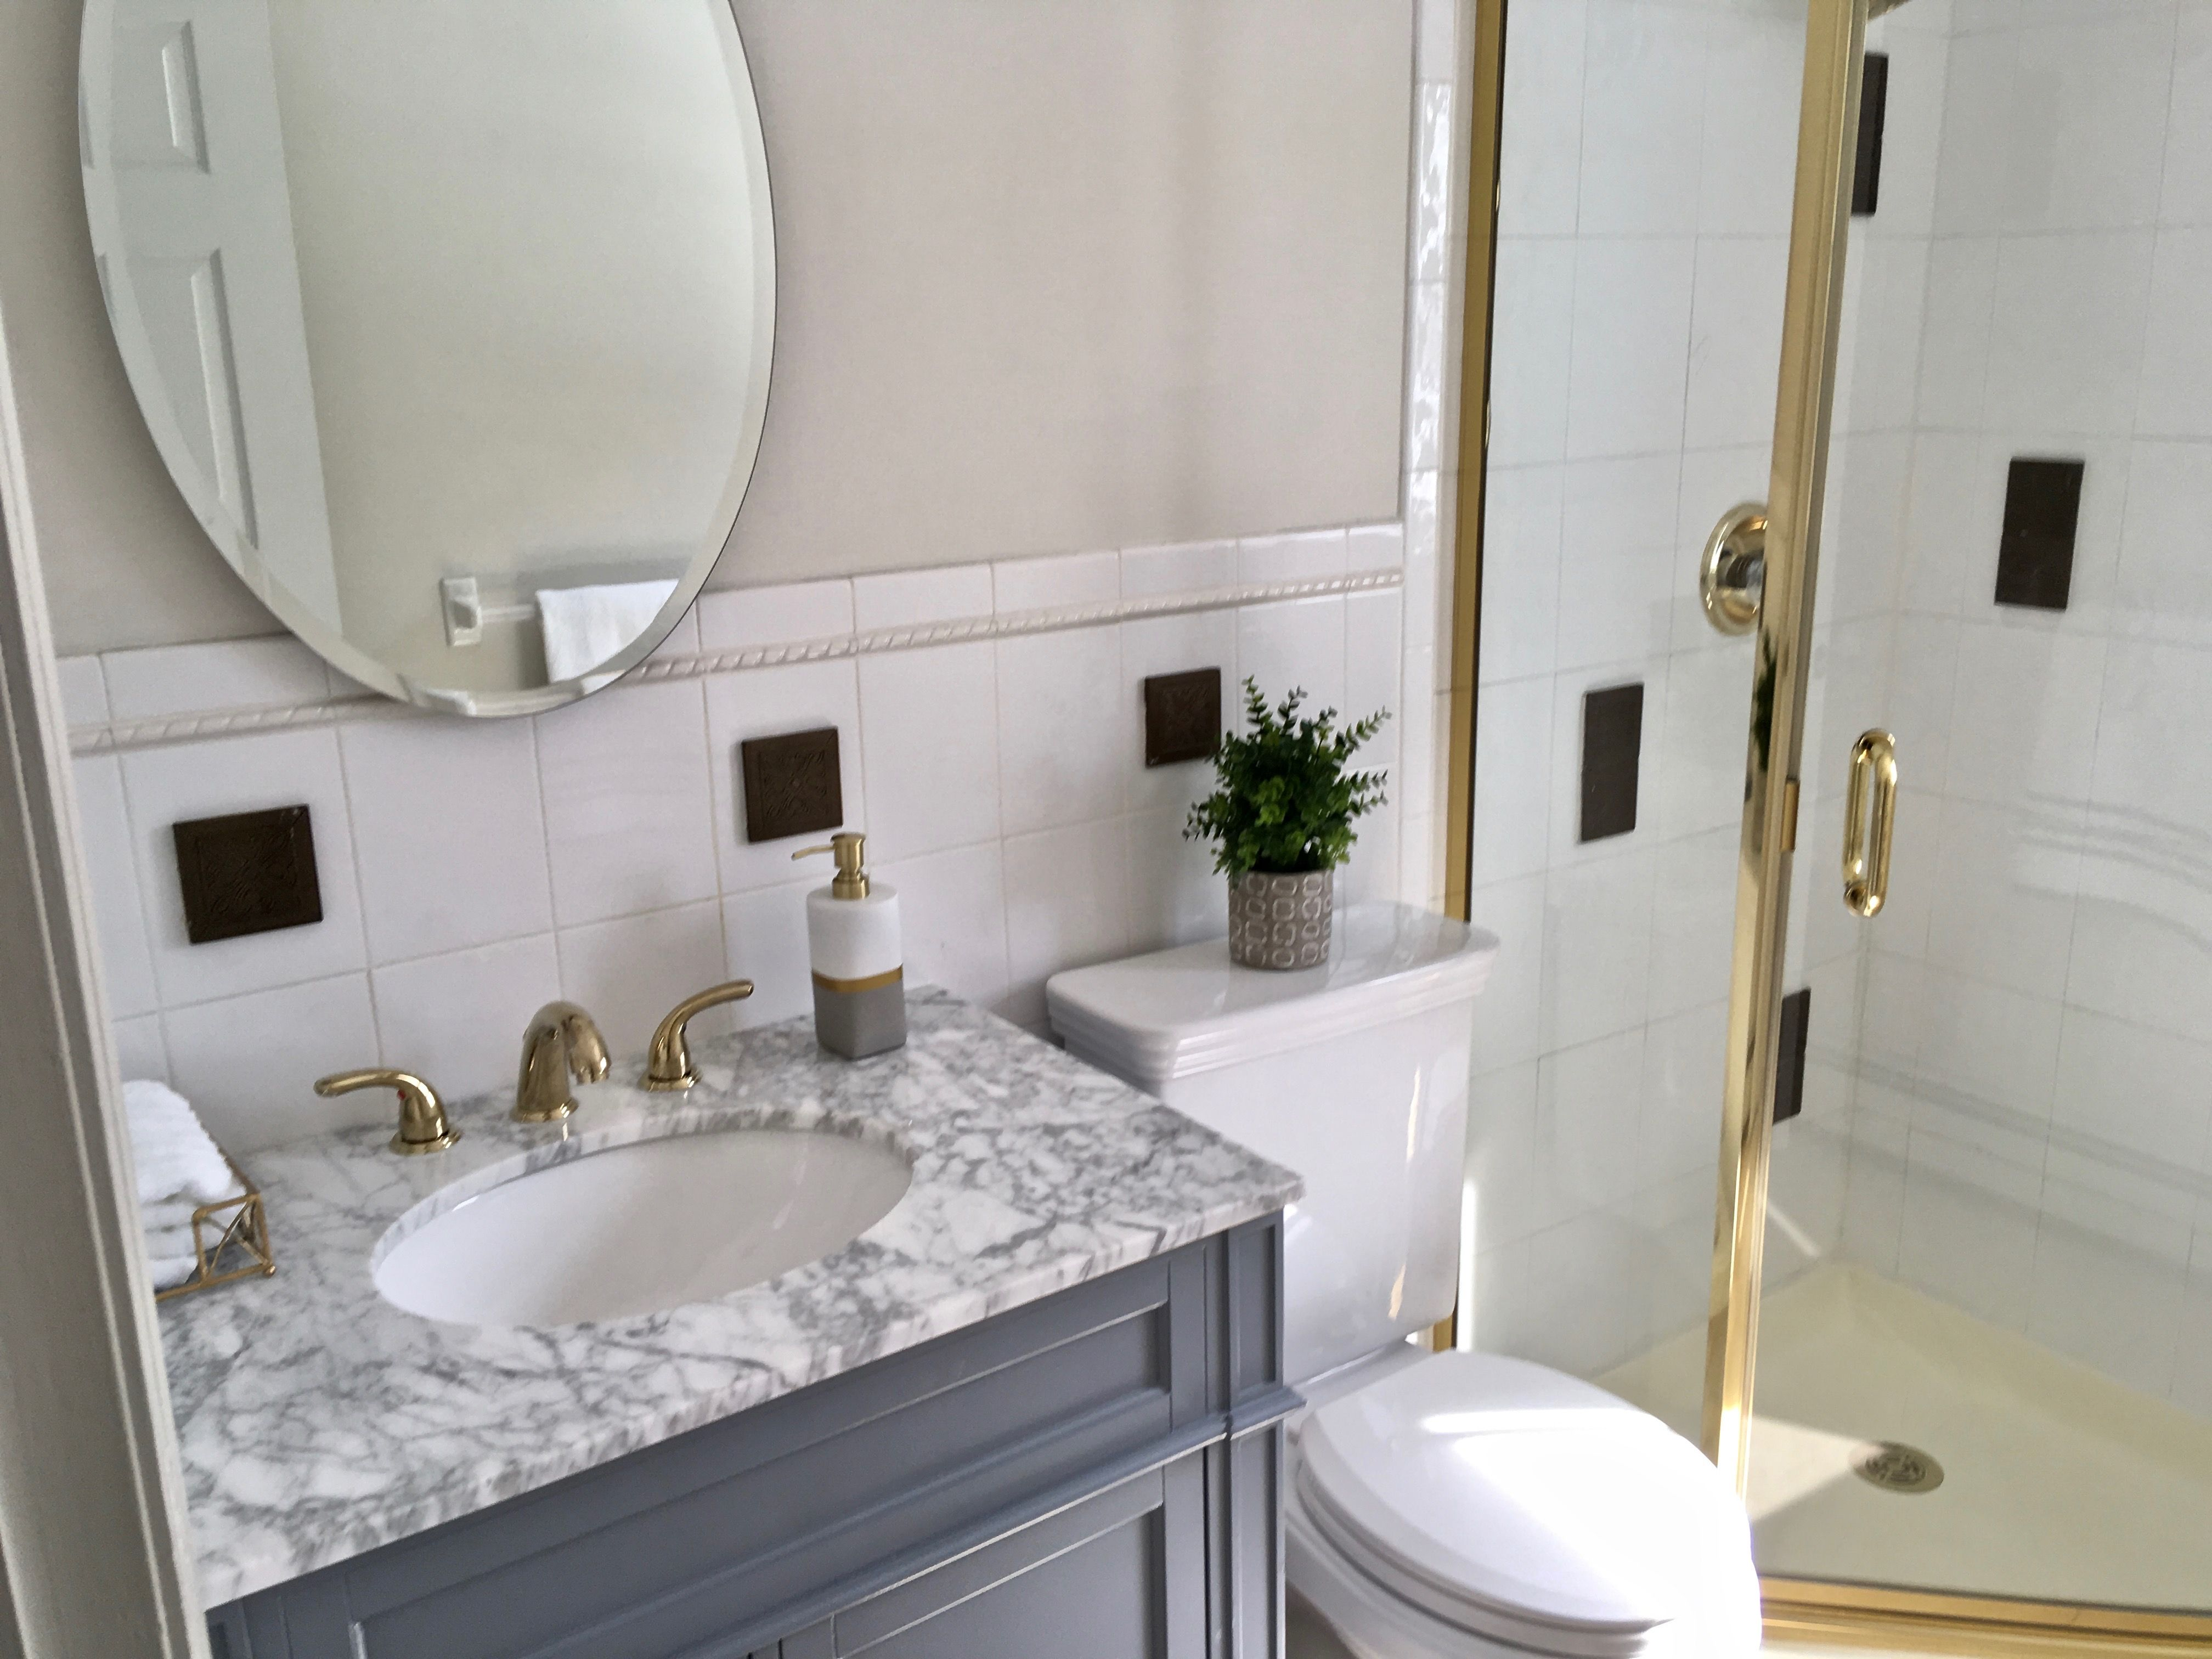 One way to make shiny brass look more updated in a bathroom: swap ...